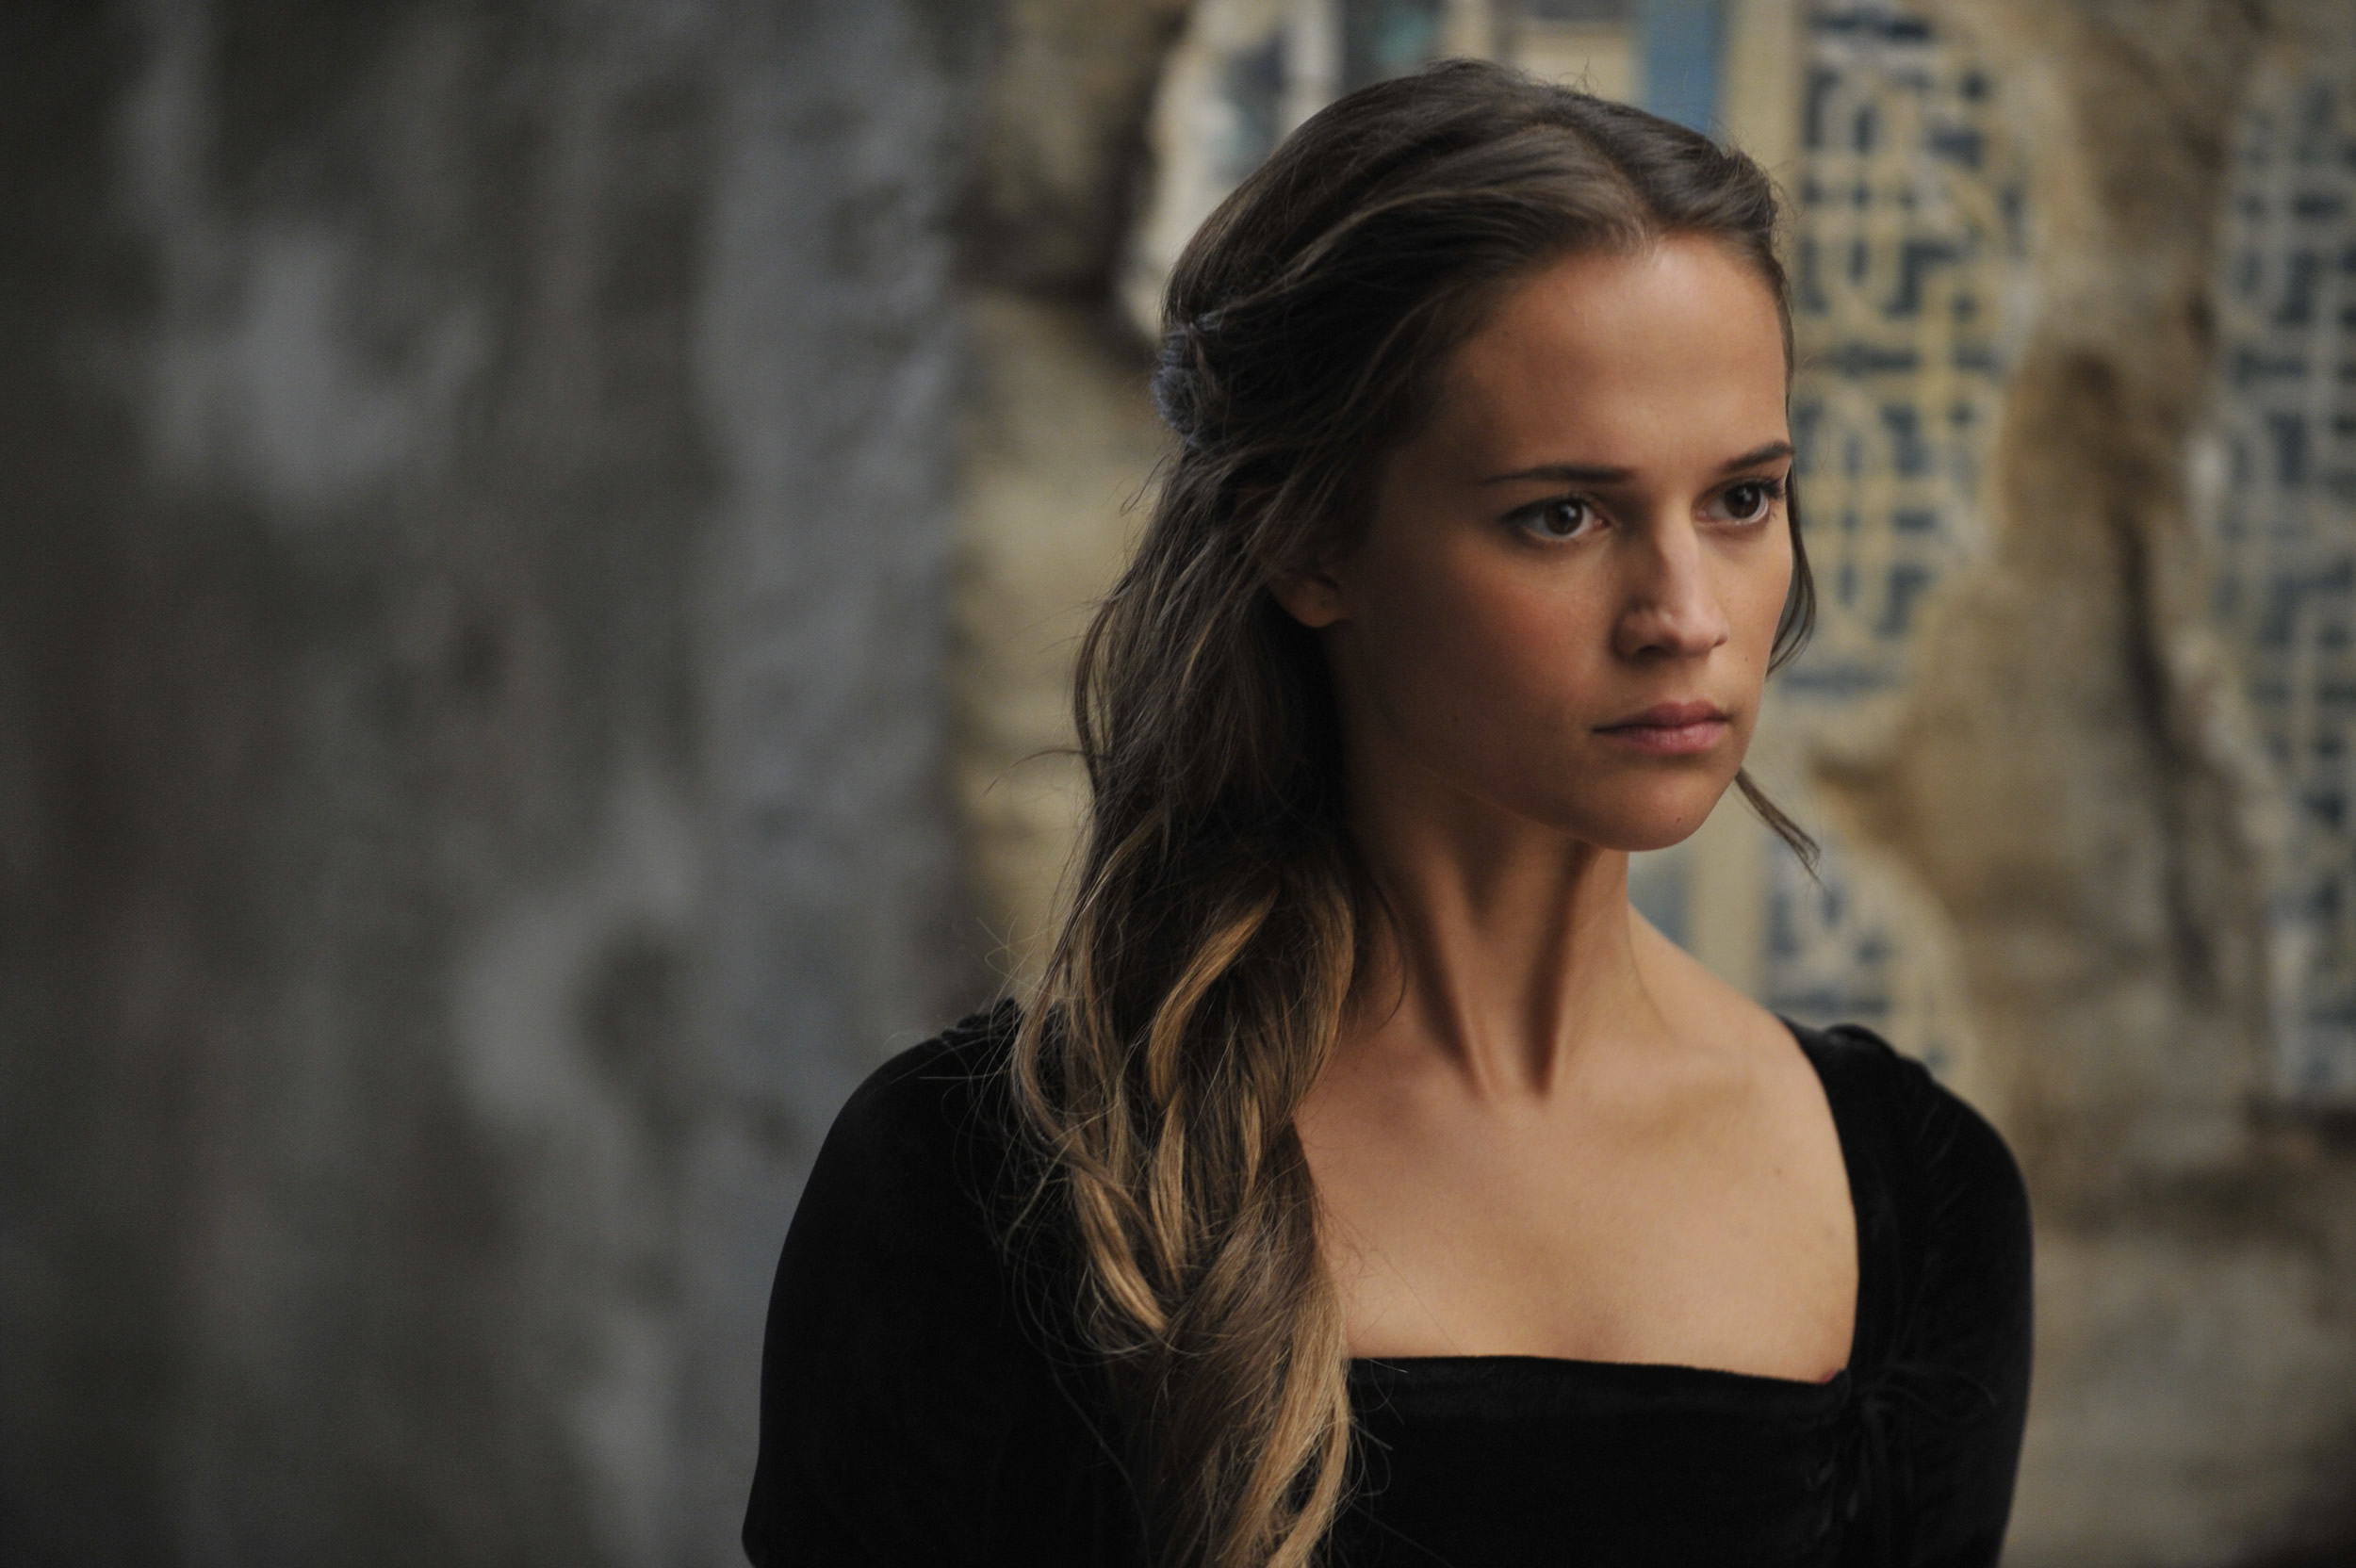 Alicia Vikander - Seventh Son